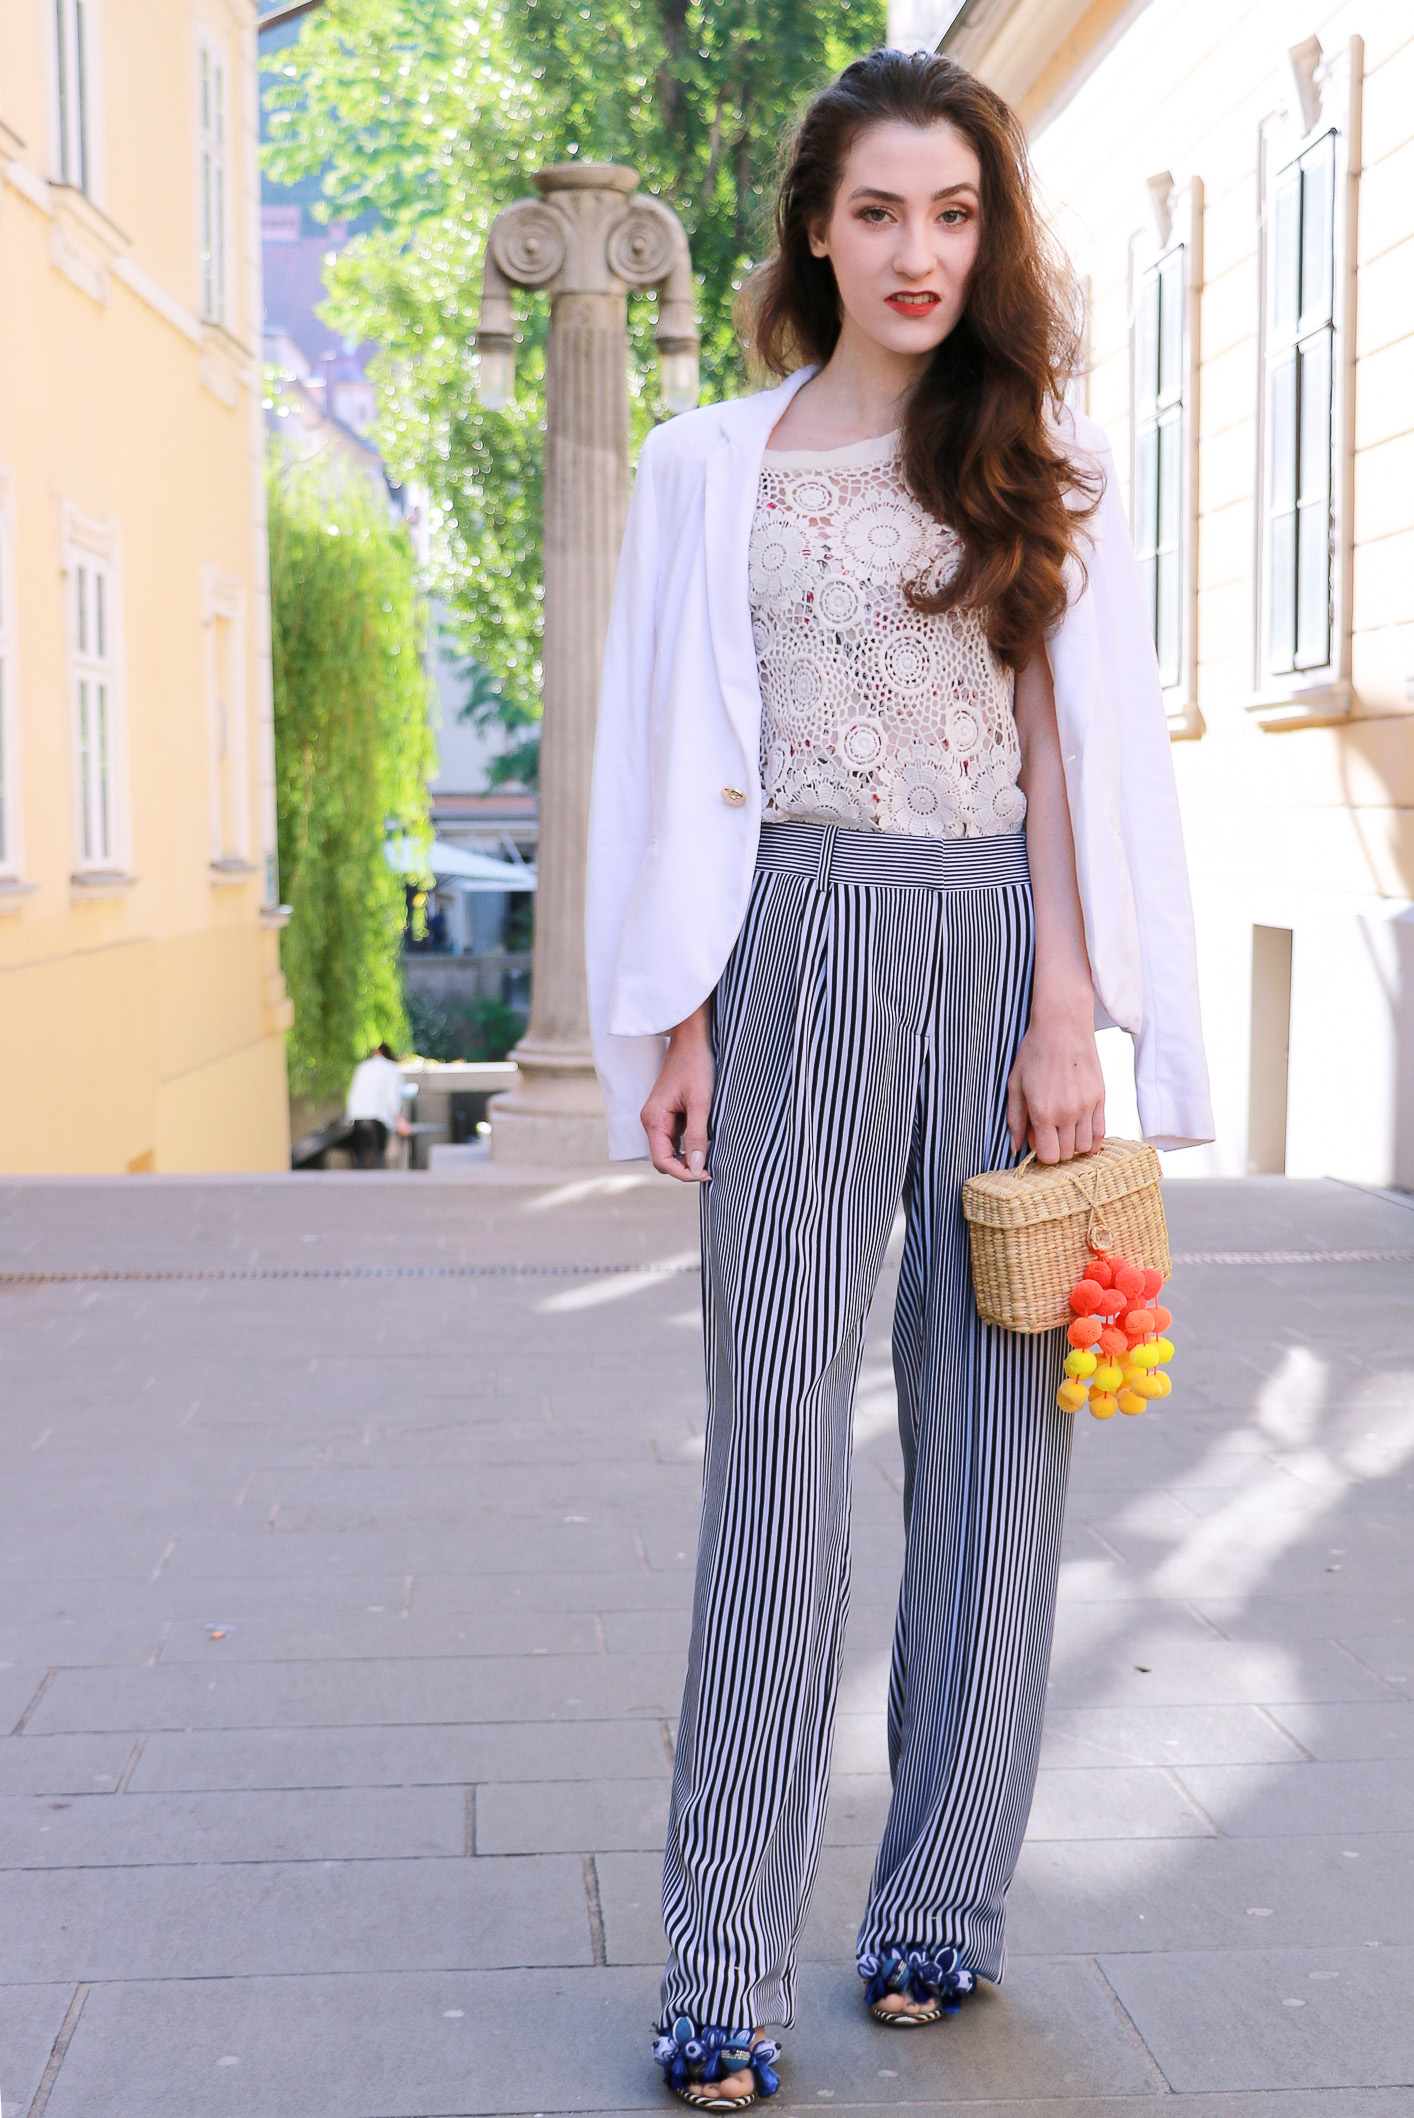 Fashion blogger Veronika Lipar of Brunette From Wall Street on how to wear same outfit to the office, on the streets, to the beach party in the evening, and in the morning after party